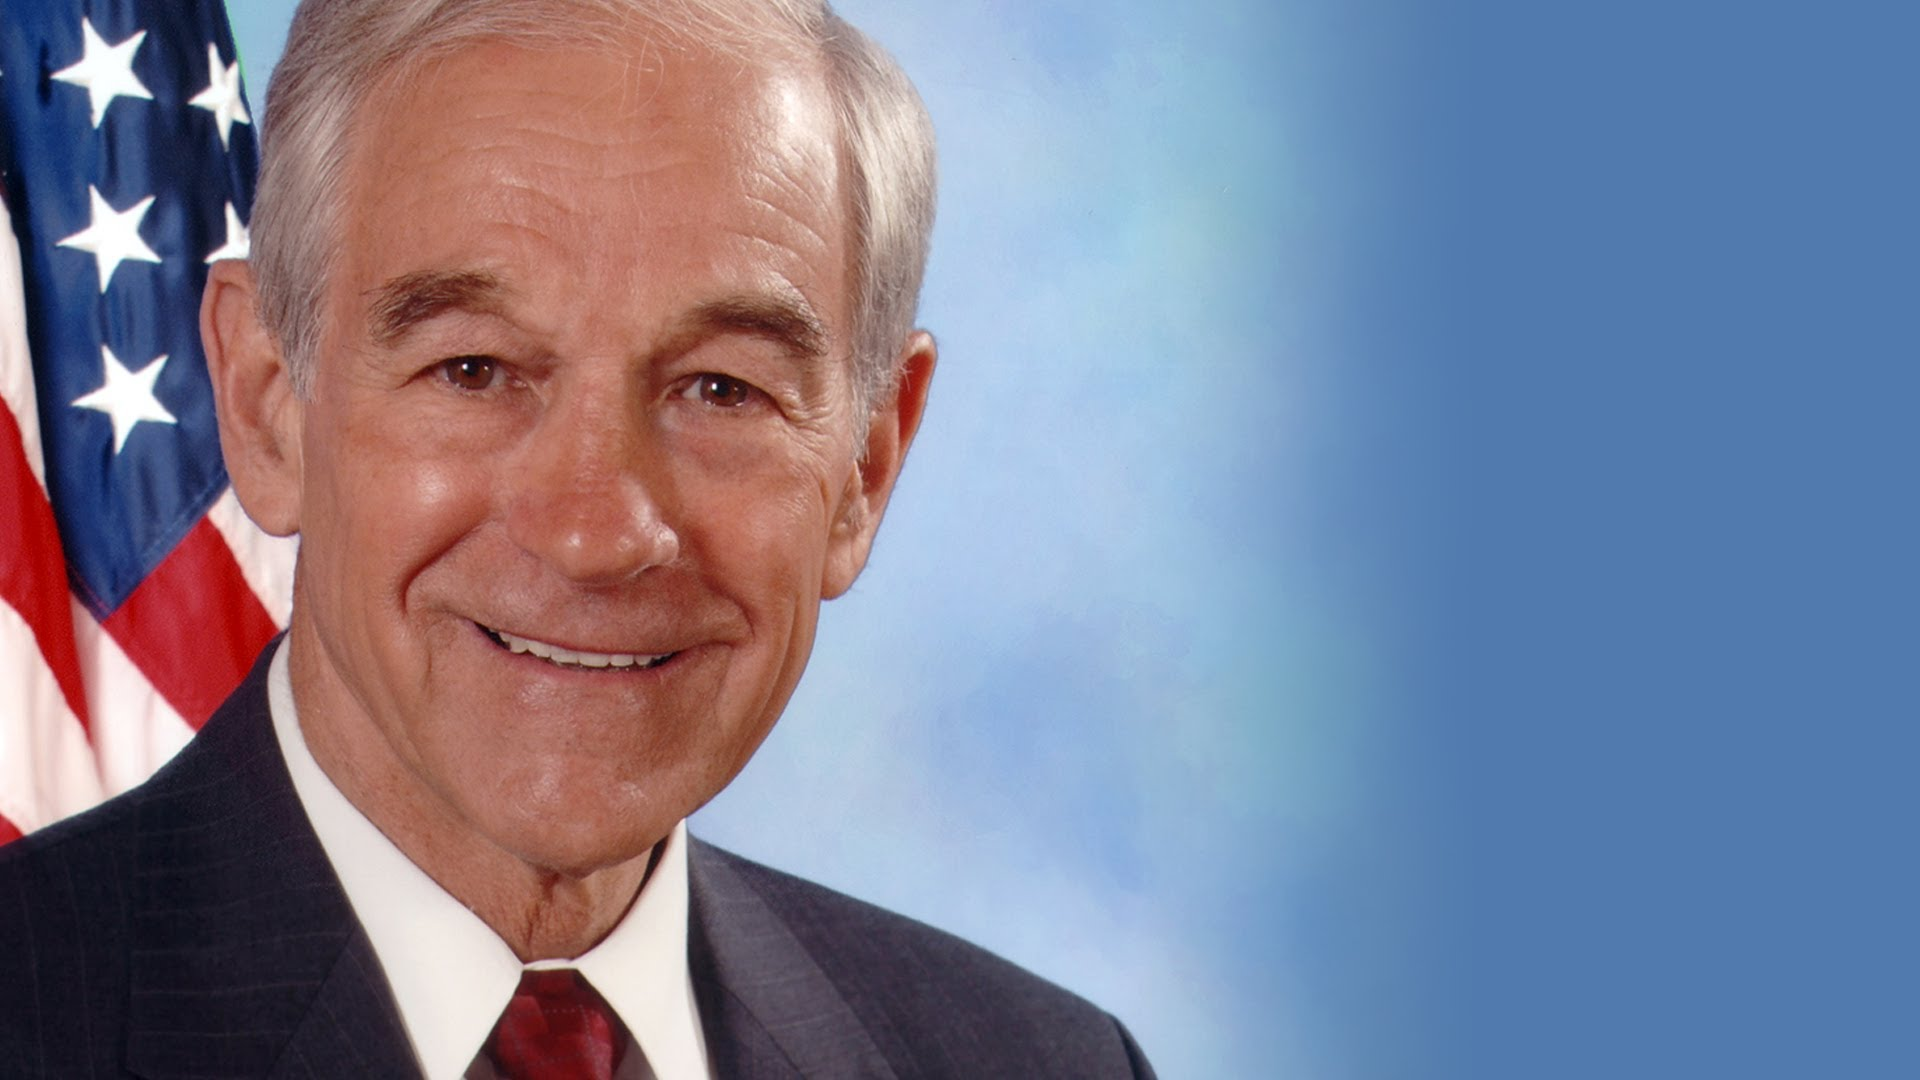 Ron Paul's Farewell Speech to Congress